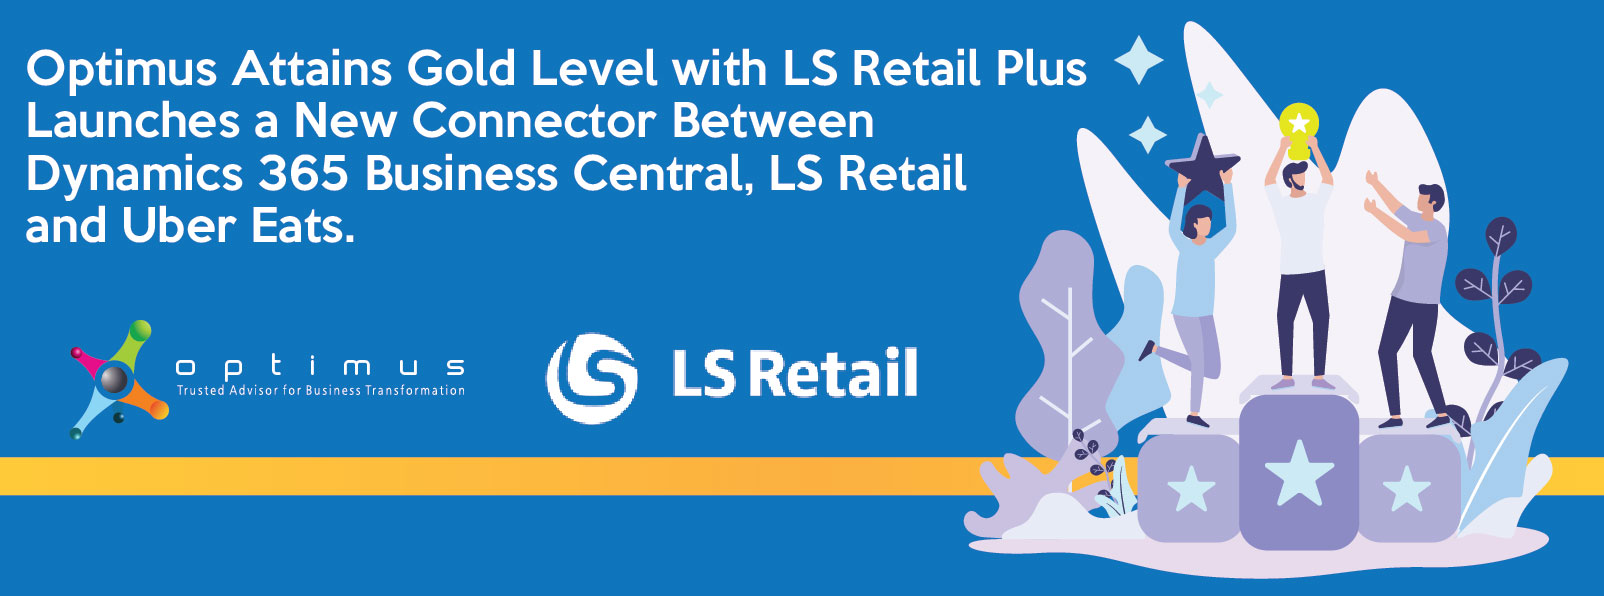 Optimus Attains Gold Level With LS Retail Plus Launches A New Connector Between Dynamics 365 Business Central, LS Retail And Uber Eats